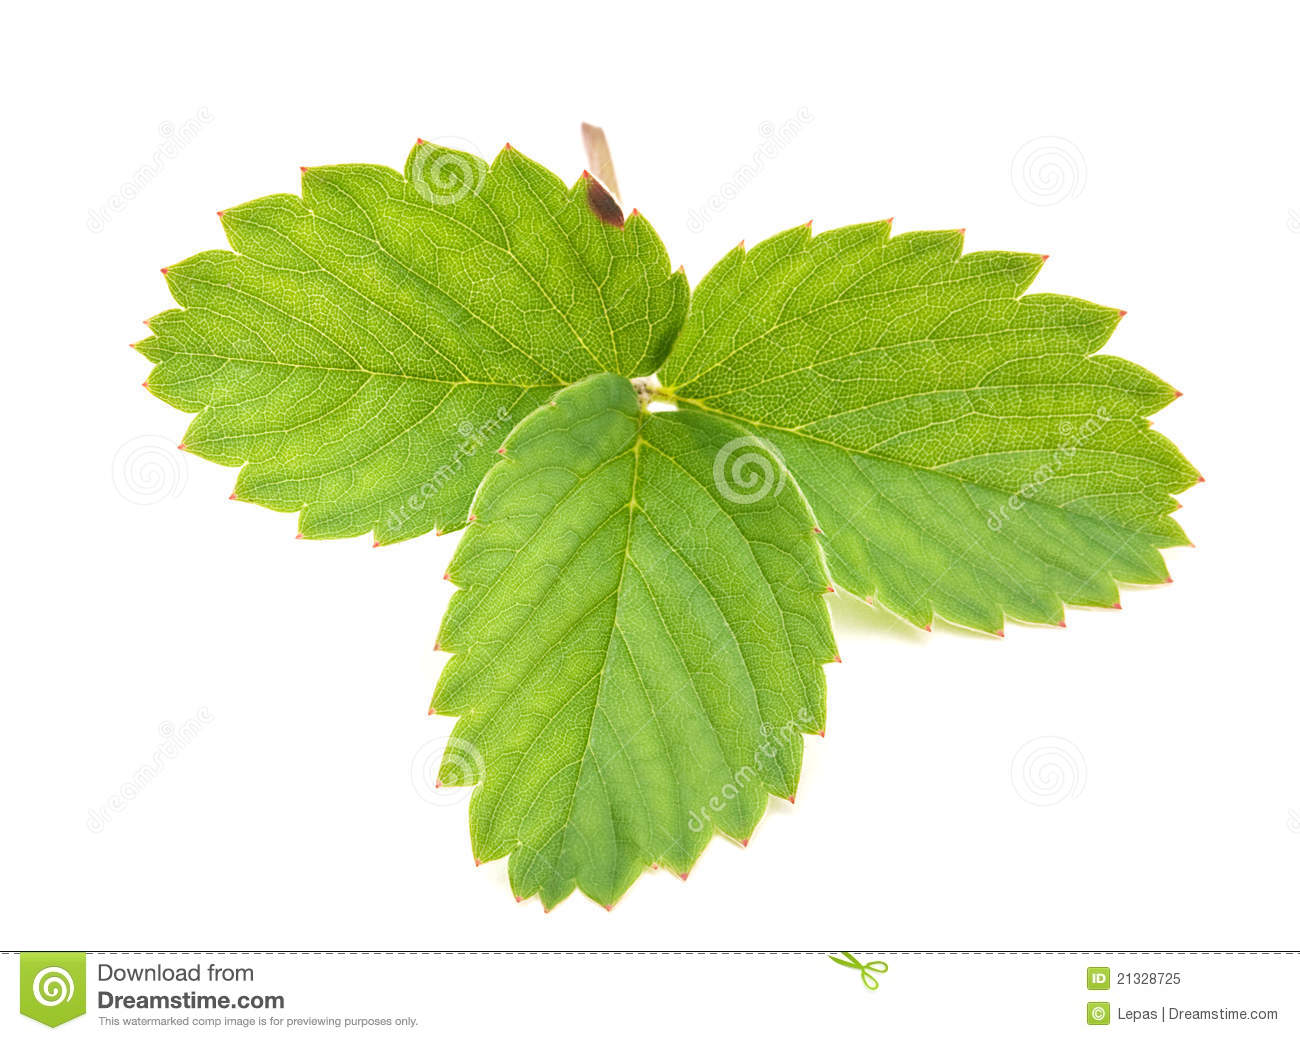 Strawberry green leave cloesup isolated on white background.